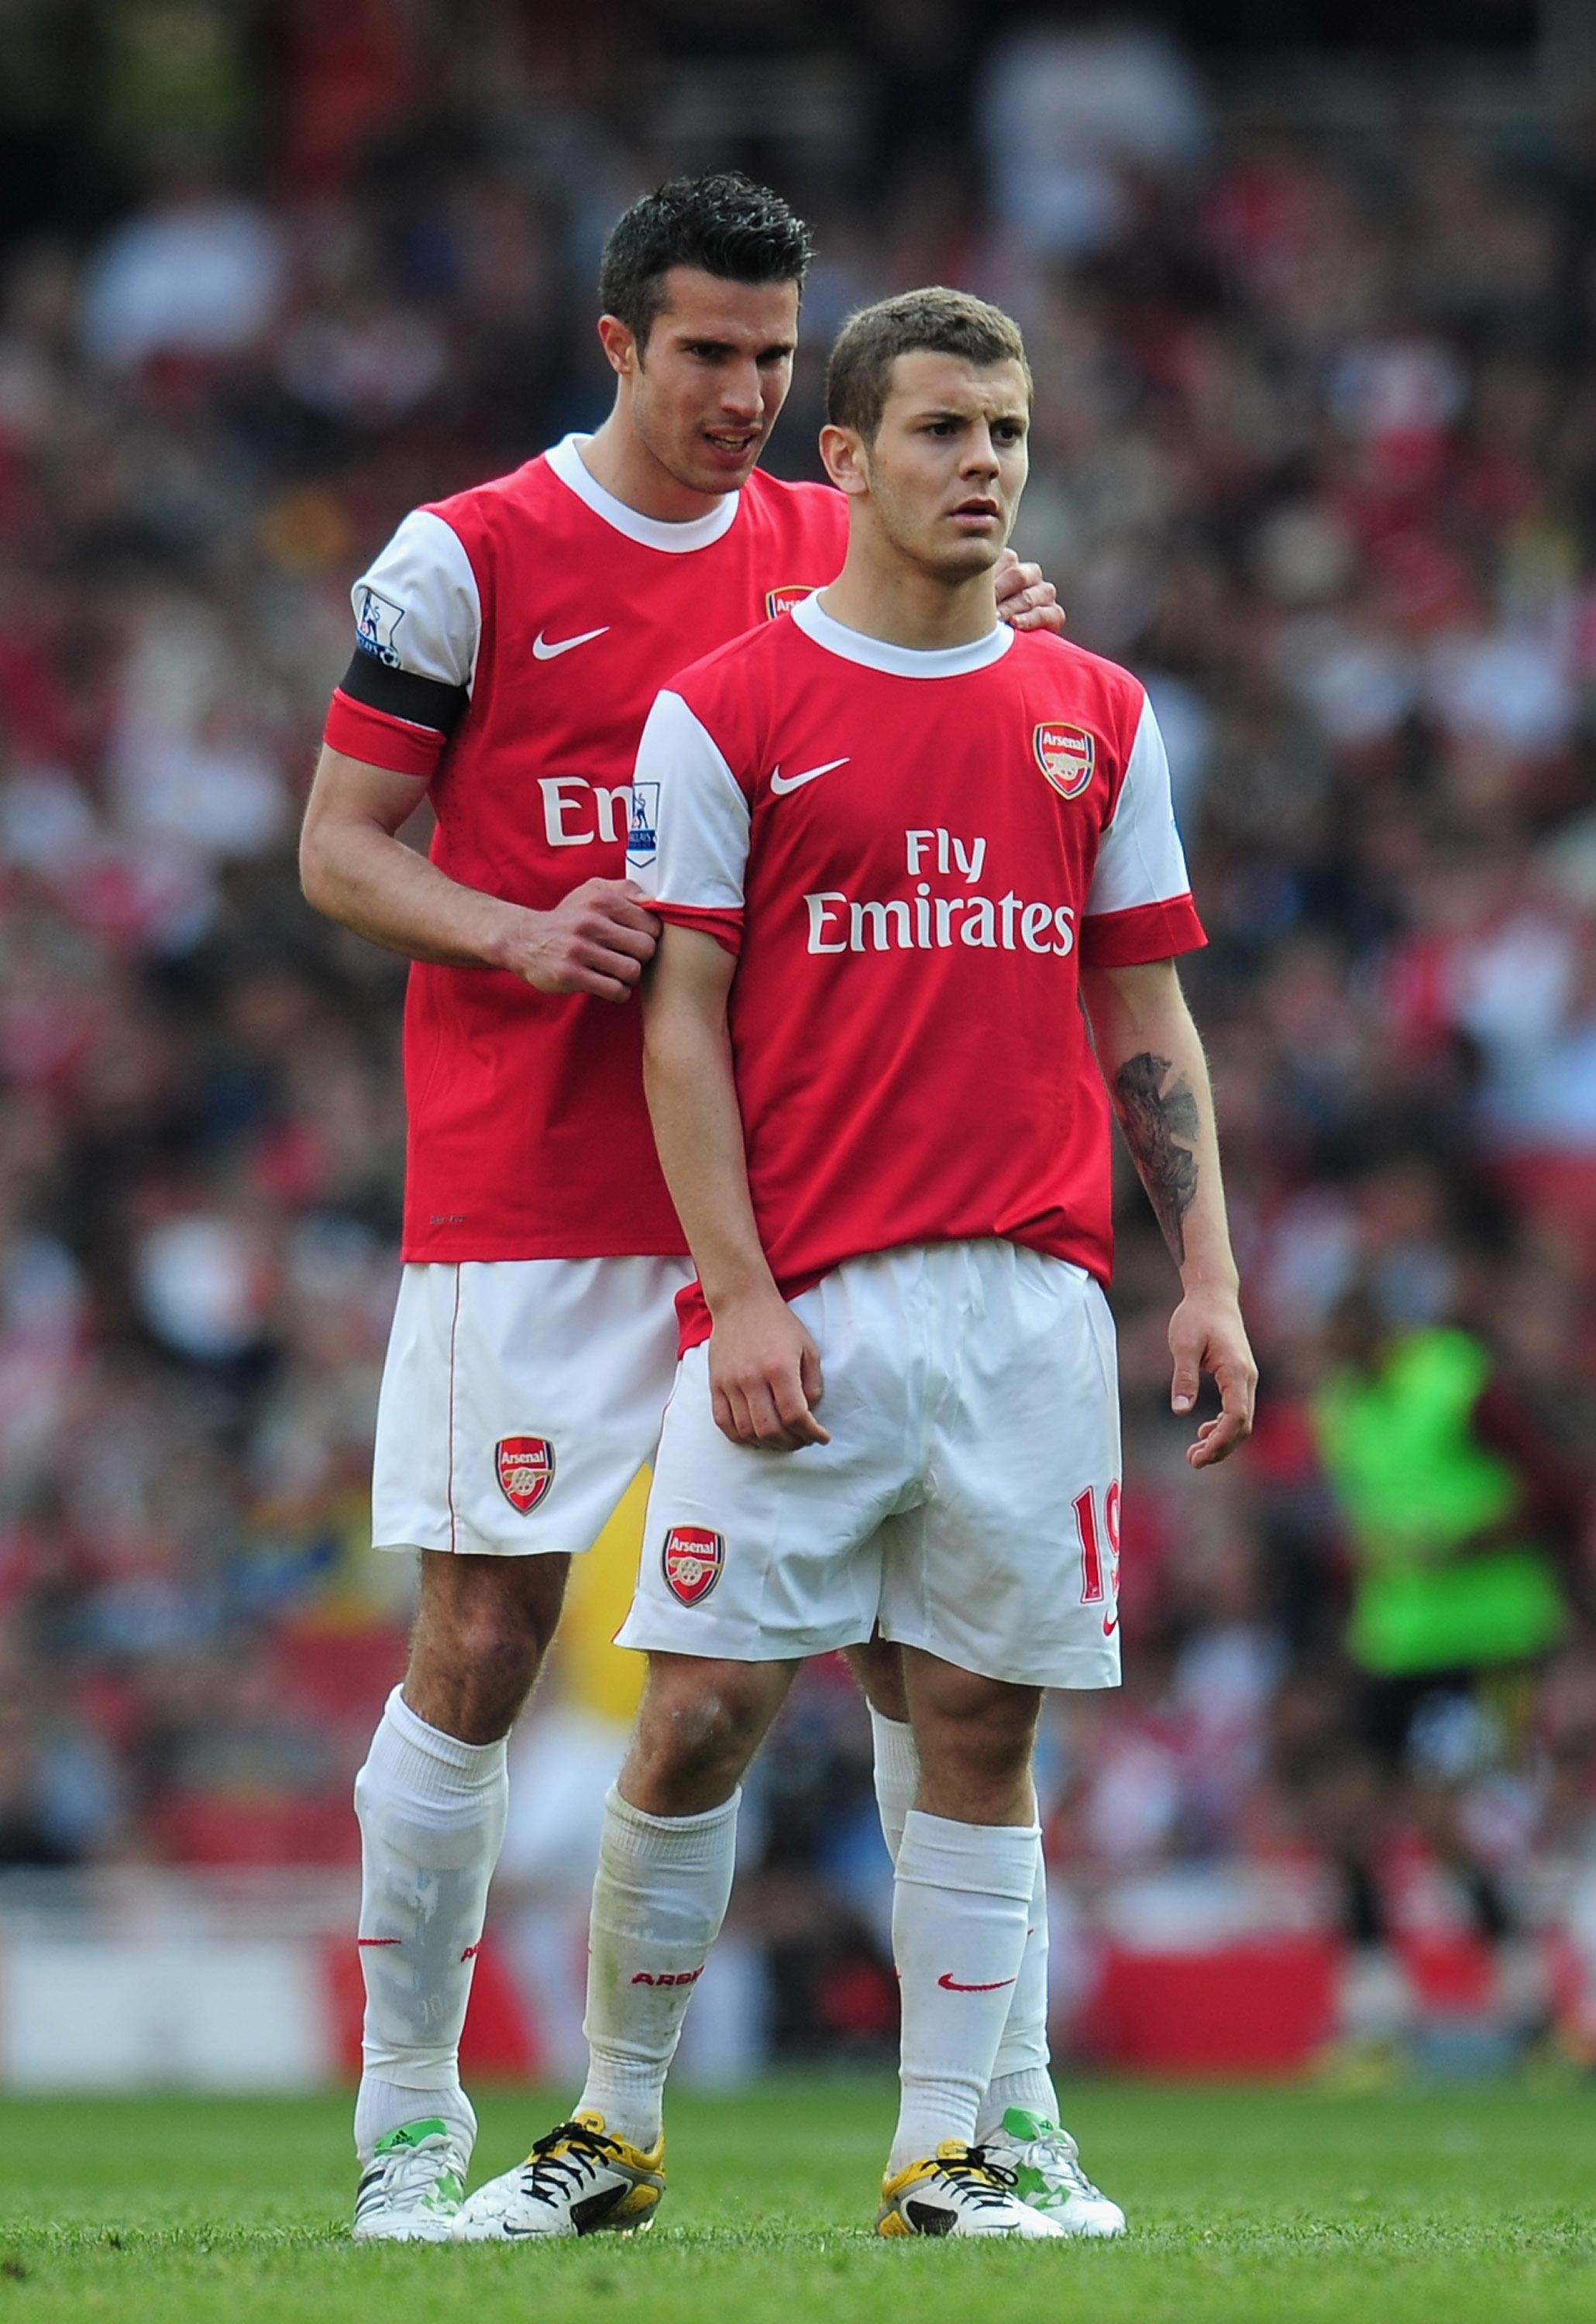 Can we have this Wilshere back please?